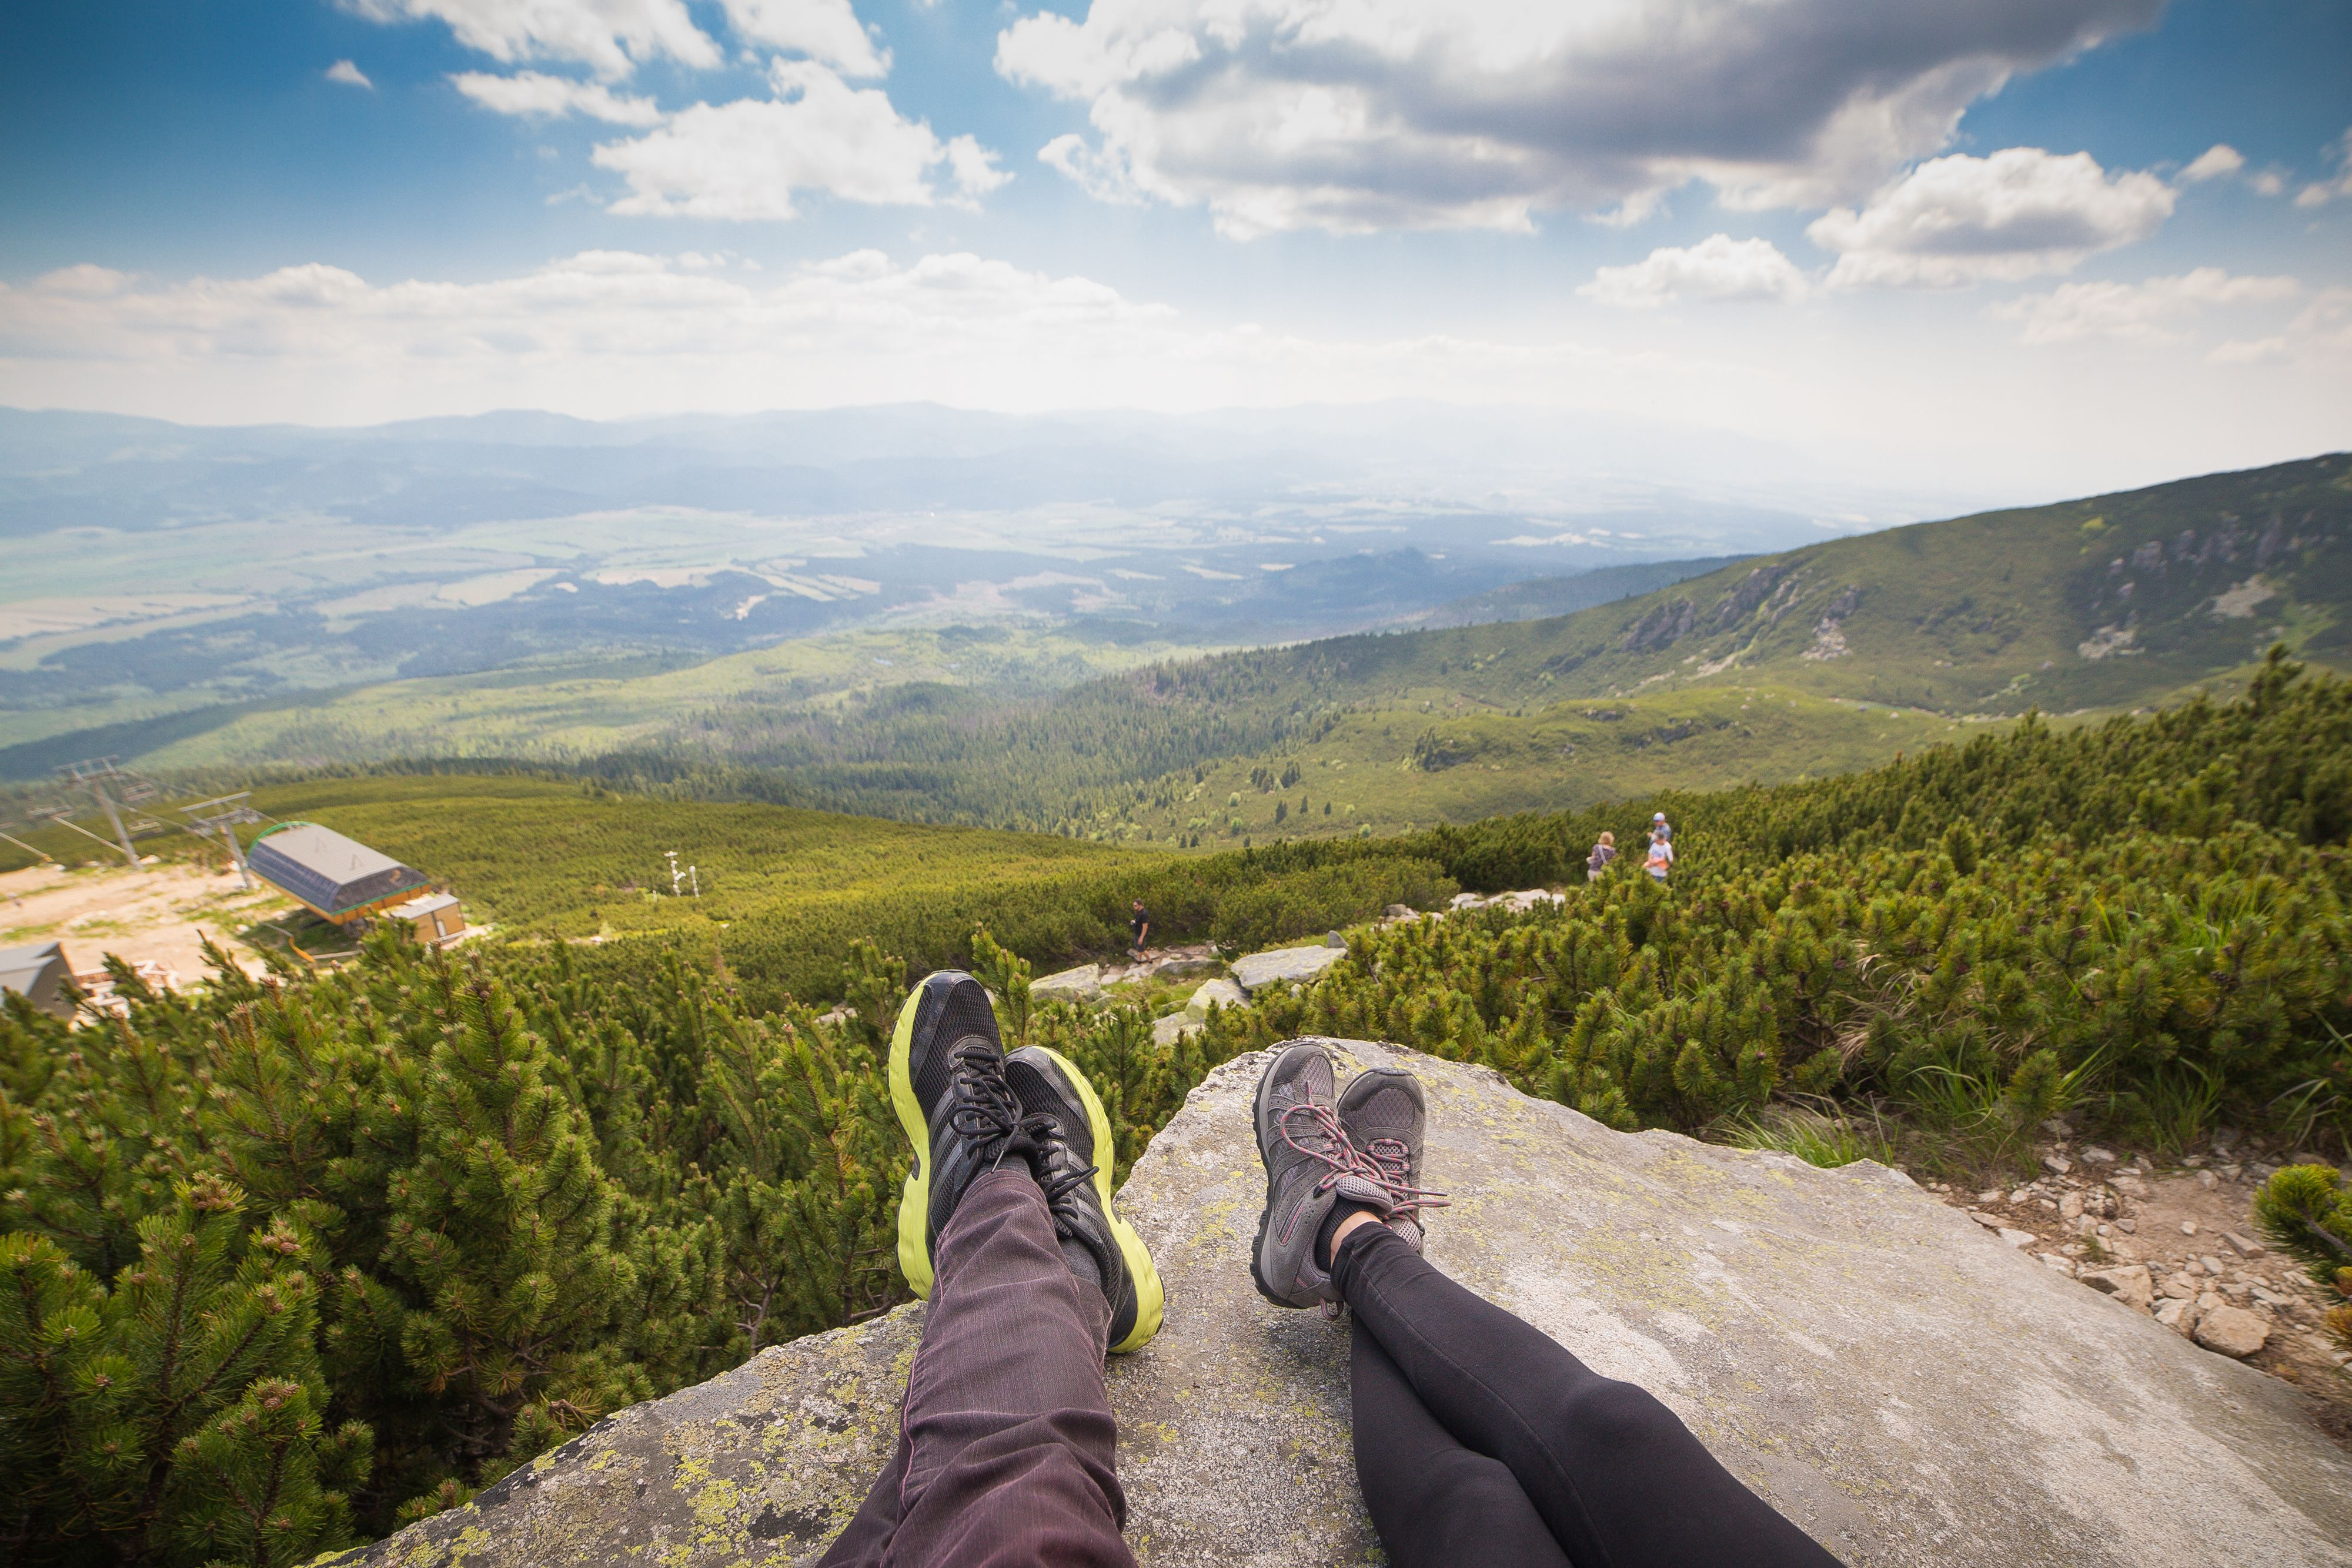 Couple's feet lying on rock at the top of a mountain